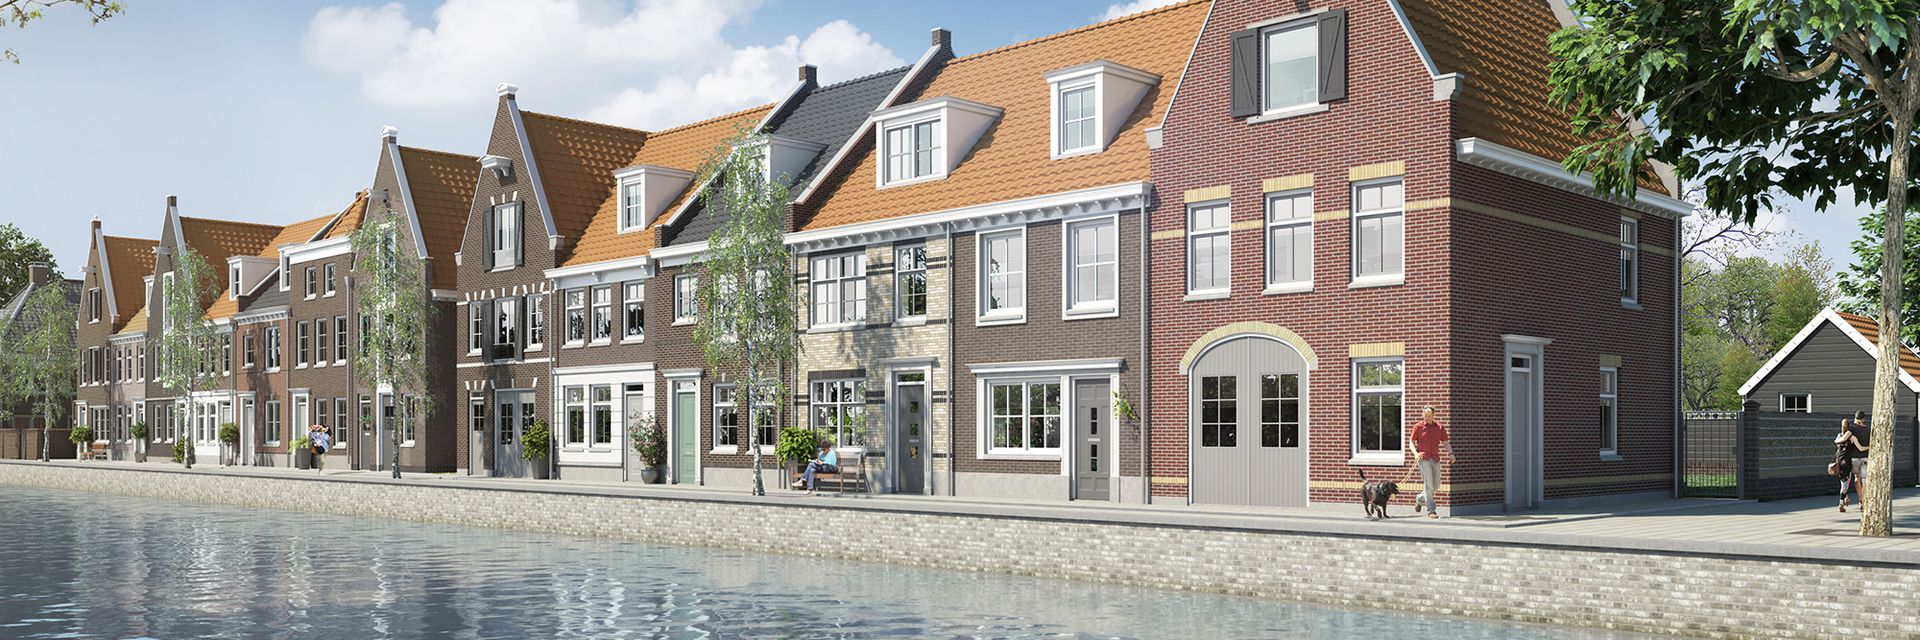 "Project "" Oude Werf "" Middelharnis"